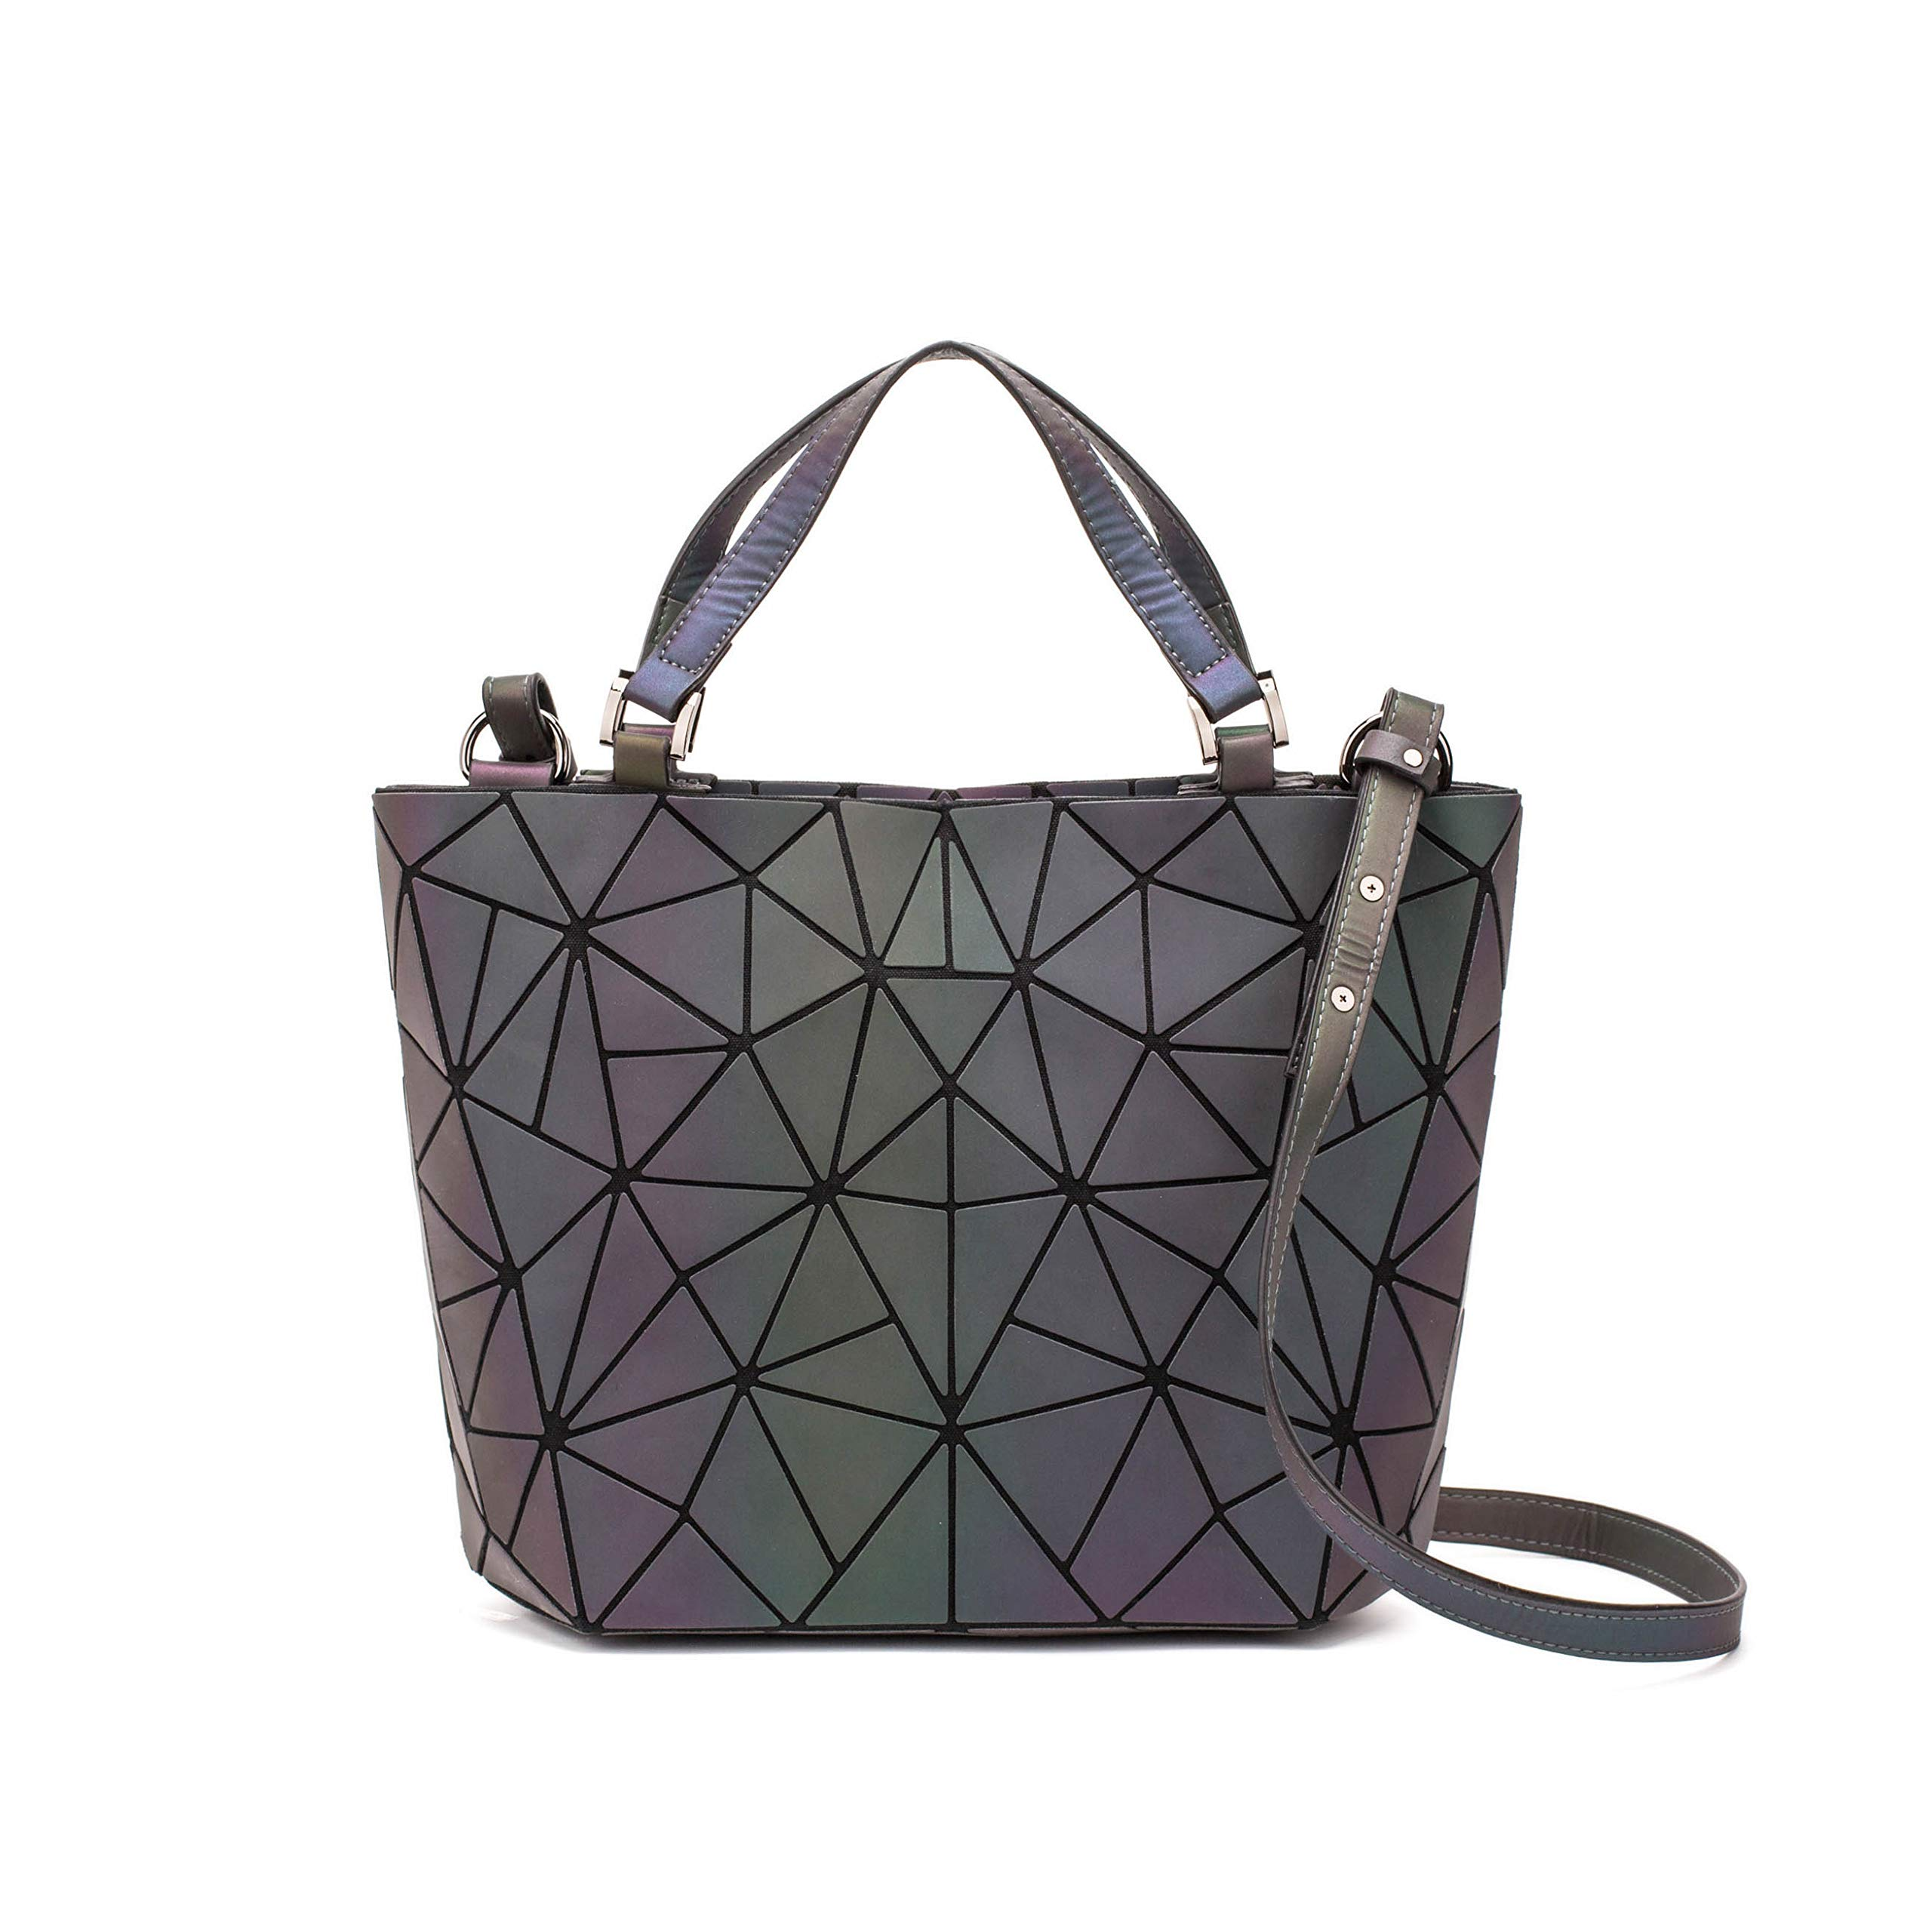 amazon.com - Geometric Backpack Fashion Backpacks Shard Lattice Luminous Bag Holographic Reflective Travel Rucksack NO.4